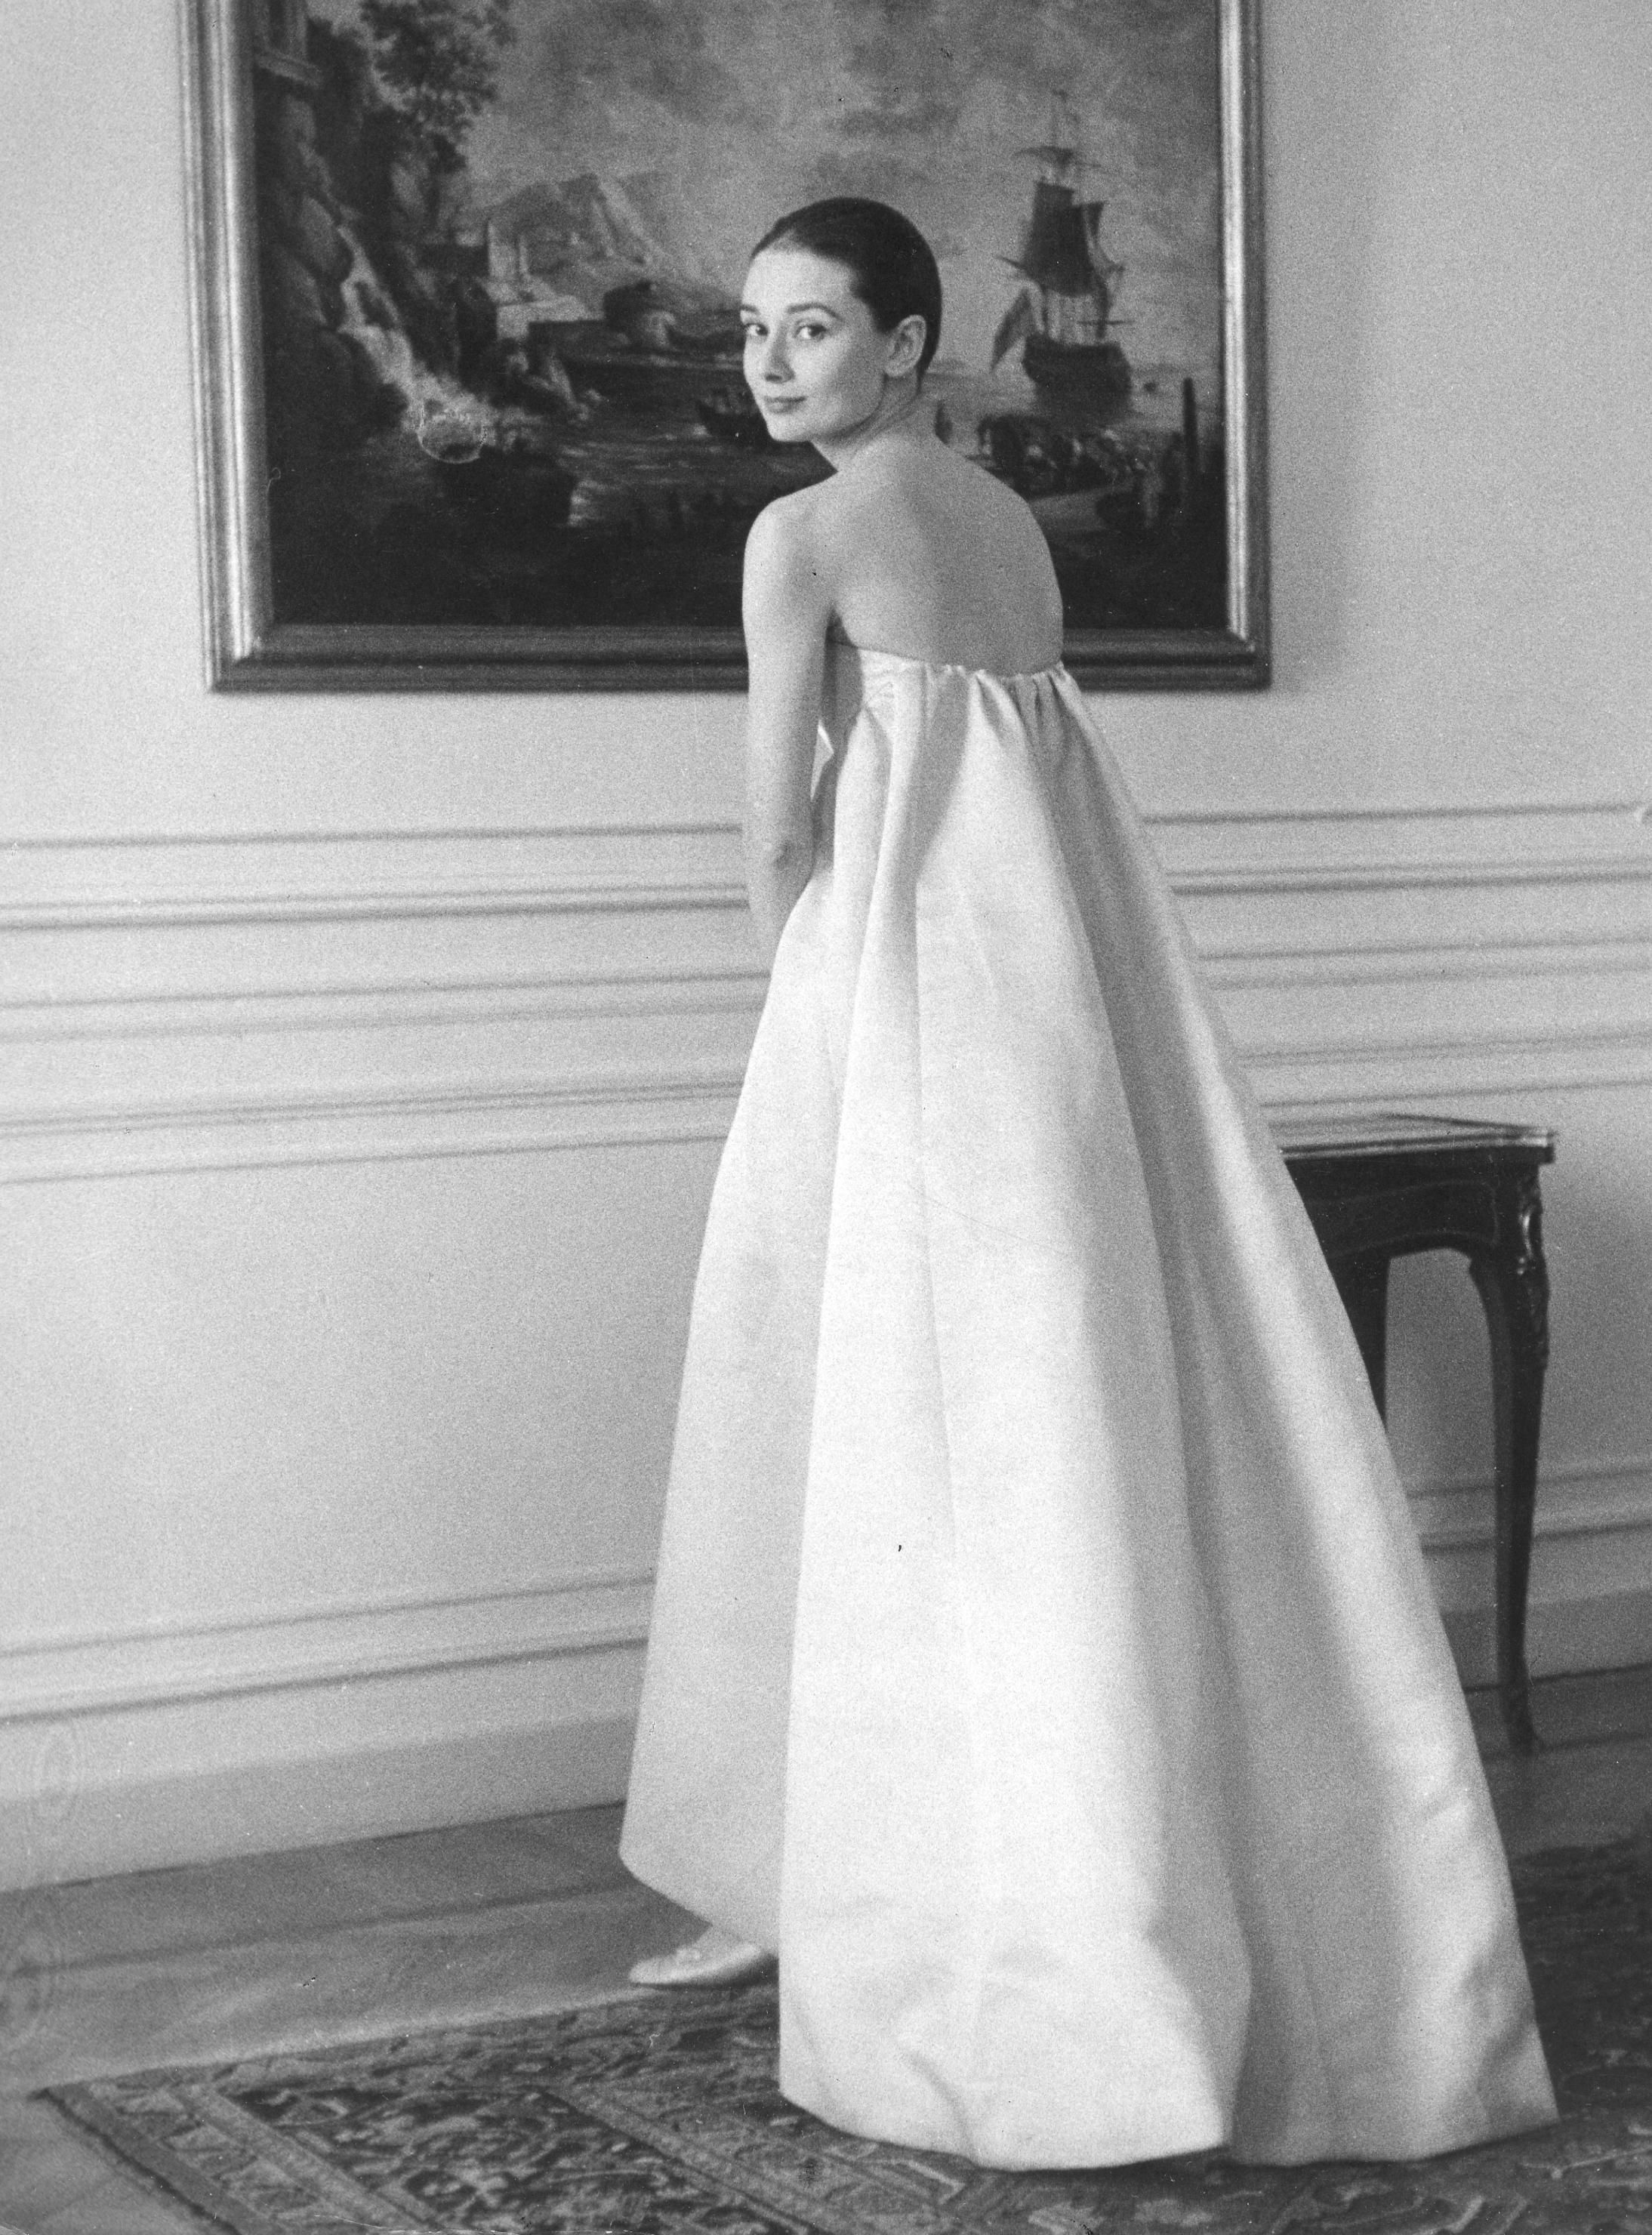 Audrey Cracks the Myth of Perfection